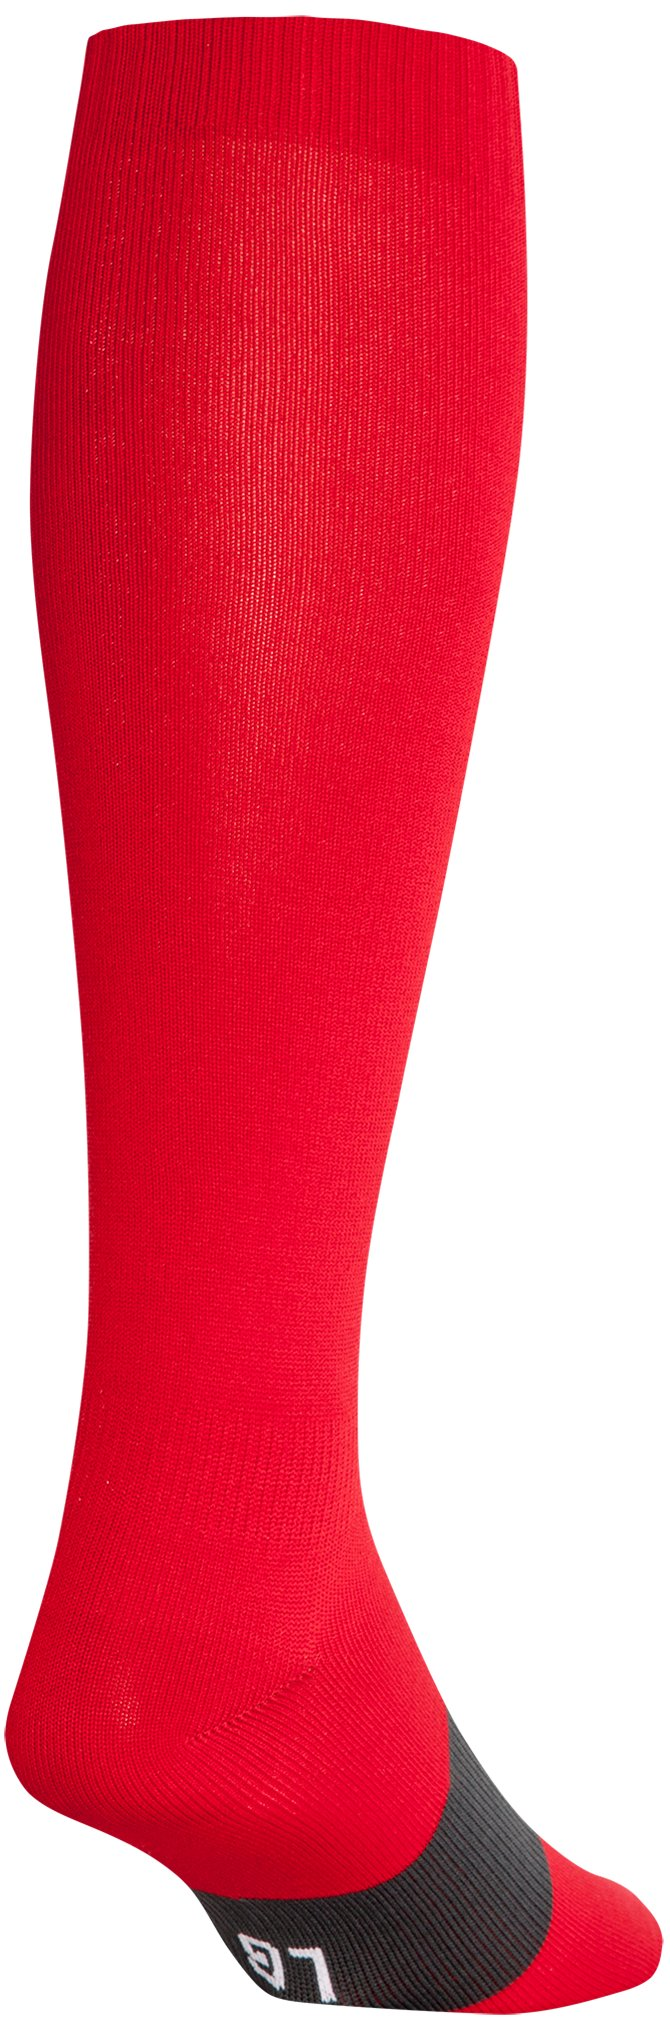 red high socks UA Soccer Solid Over-The-Calf Socks Great socks!...Nice socks...These feel comfortable enough and don't constrict my calfs like most socks do.